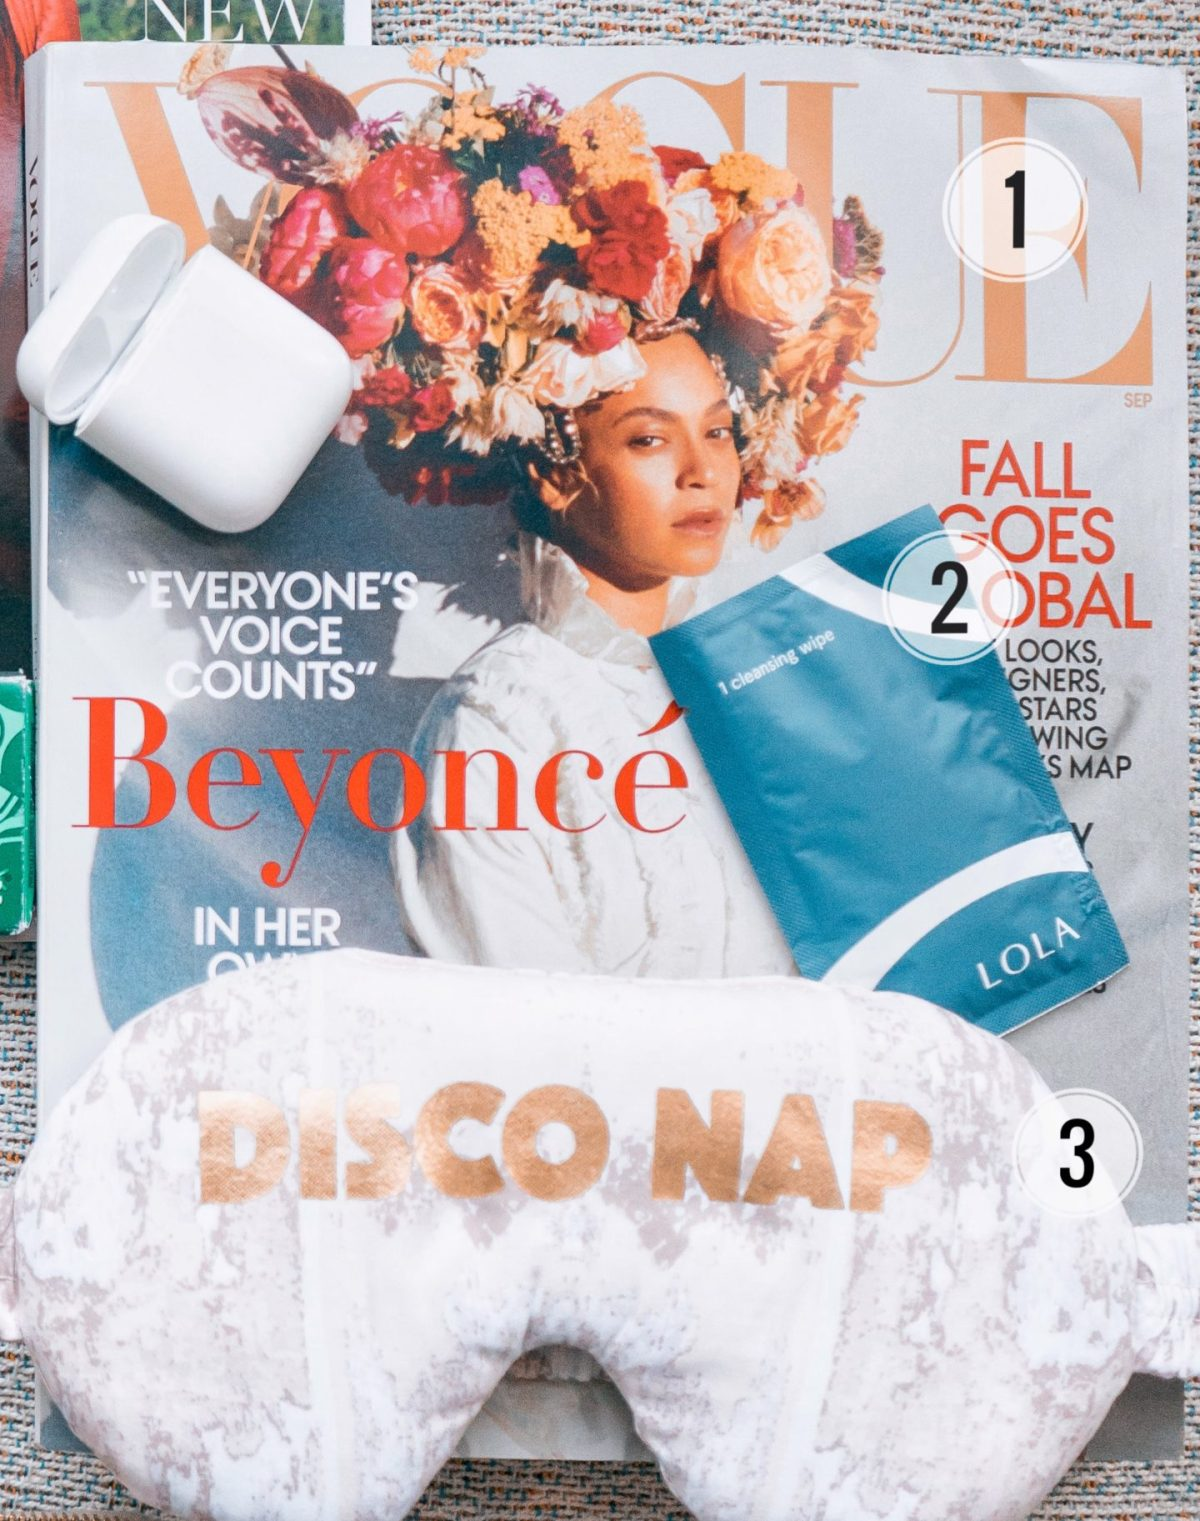 Vogue September Issue Beyonce, disco nap eye mask, lola cleansing wipes